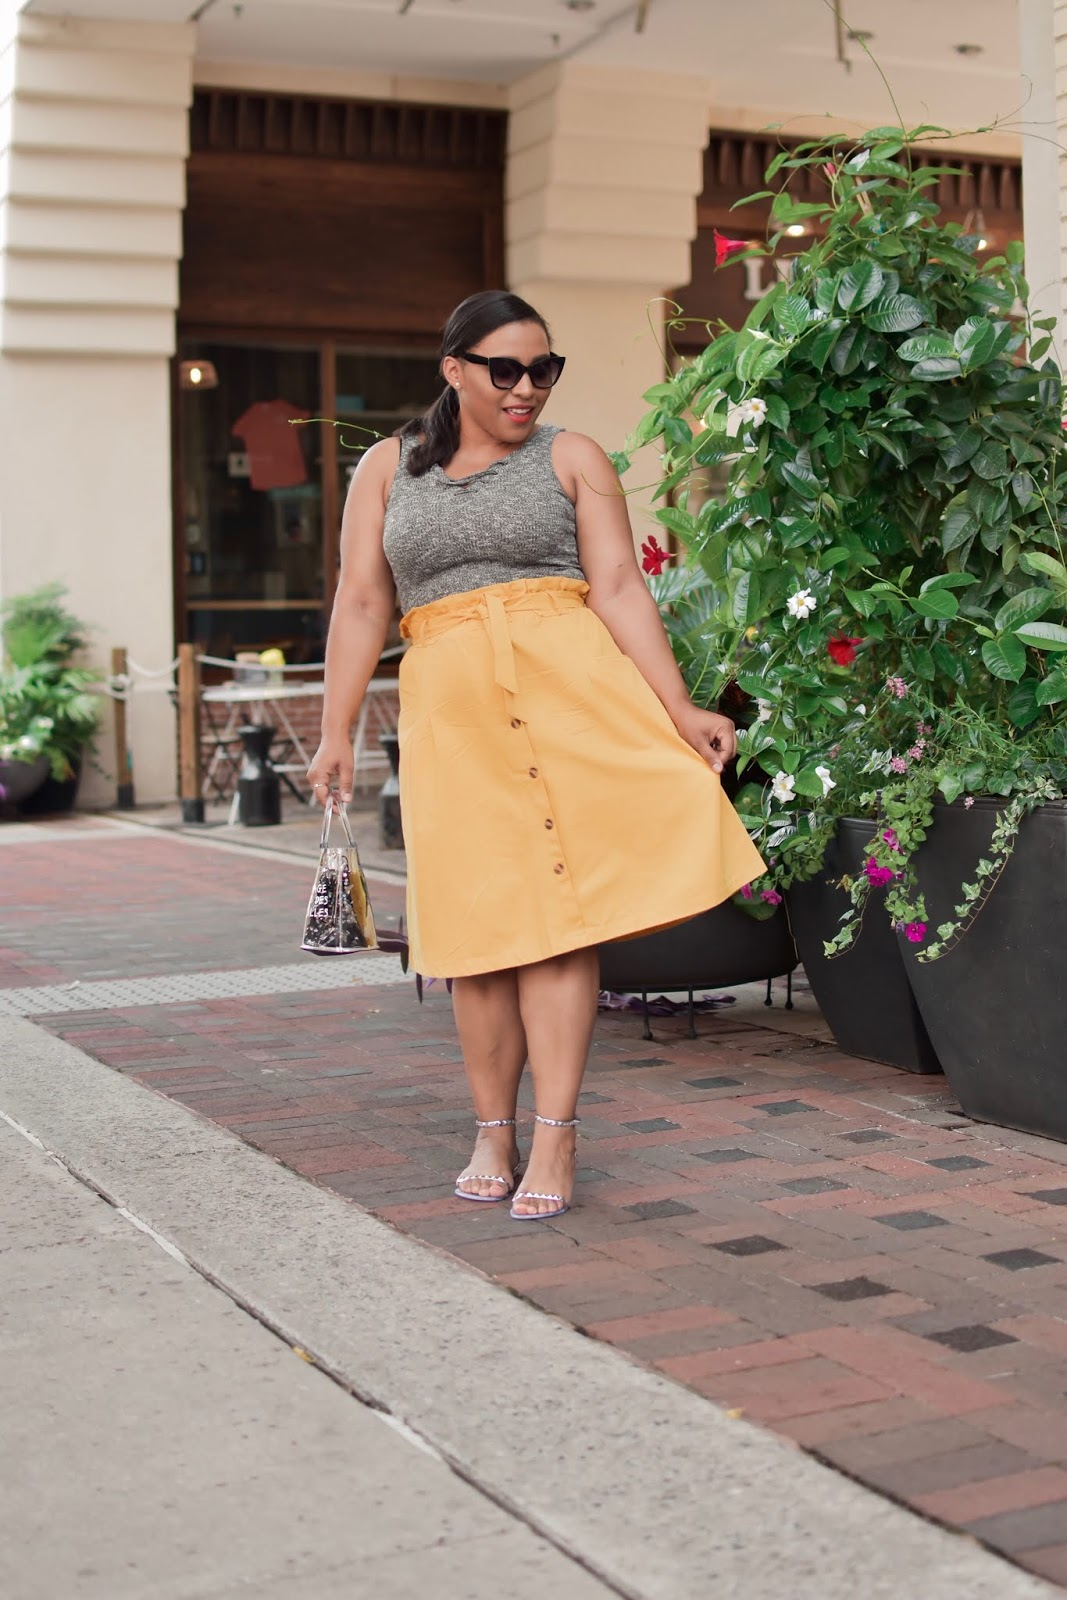 Paper bag skirt, shein, shein clothing, pattys kloset, summer outfit ideas, midi skirt